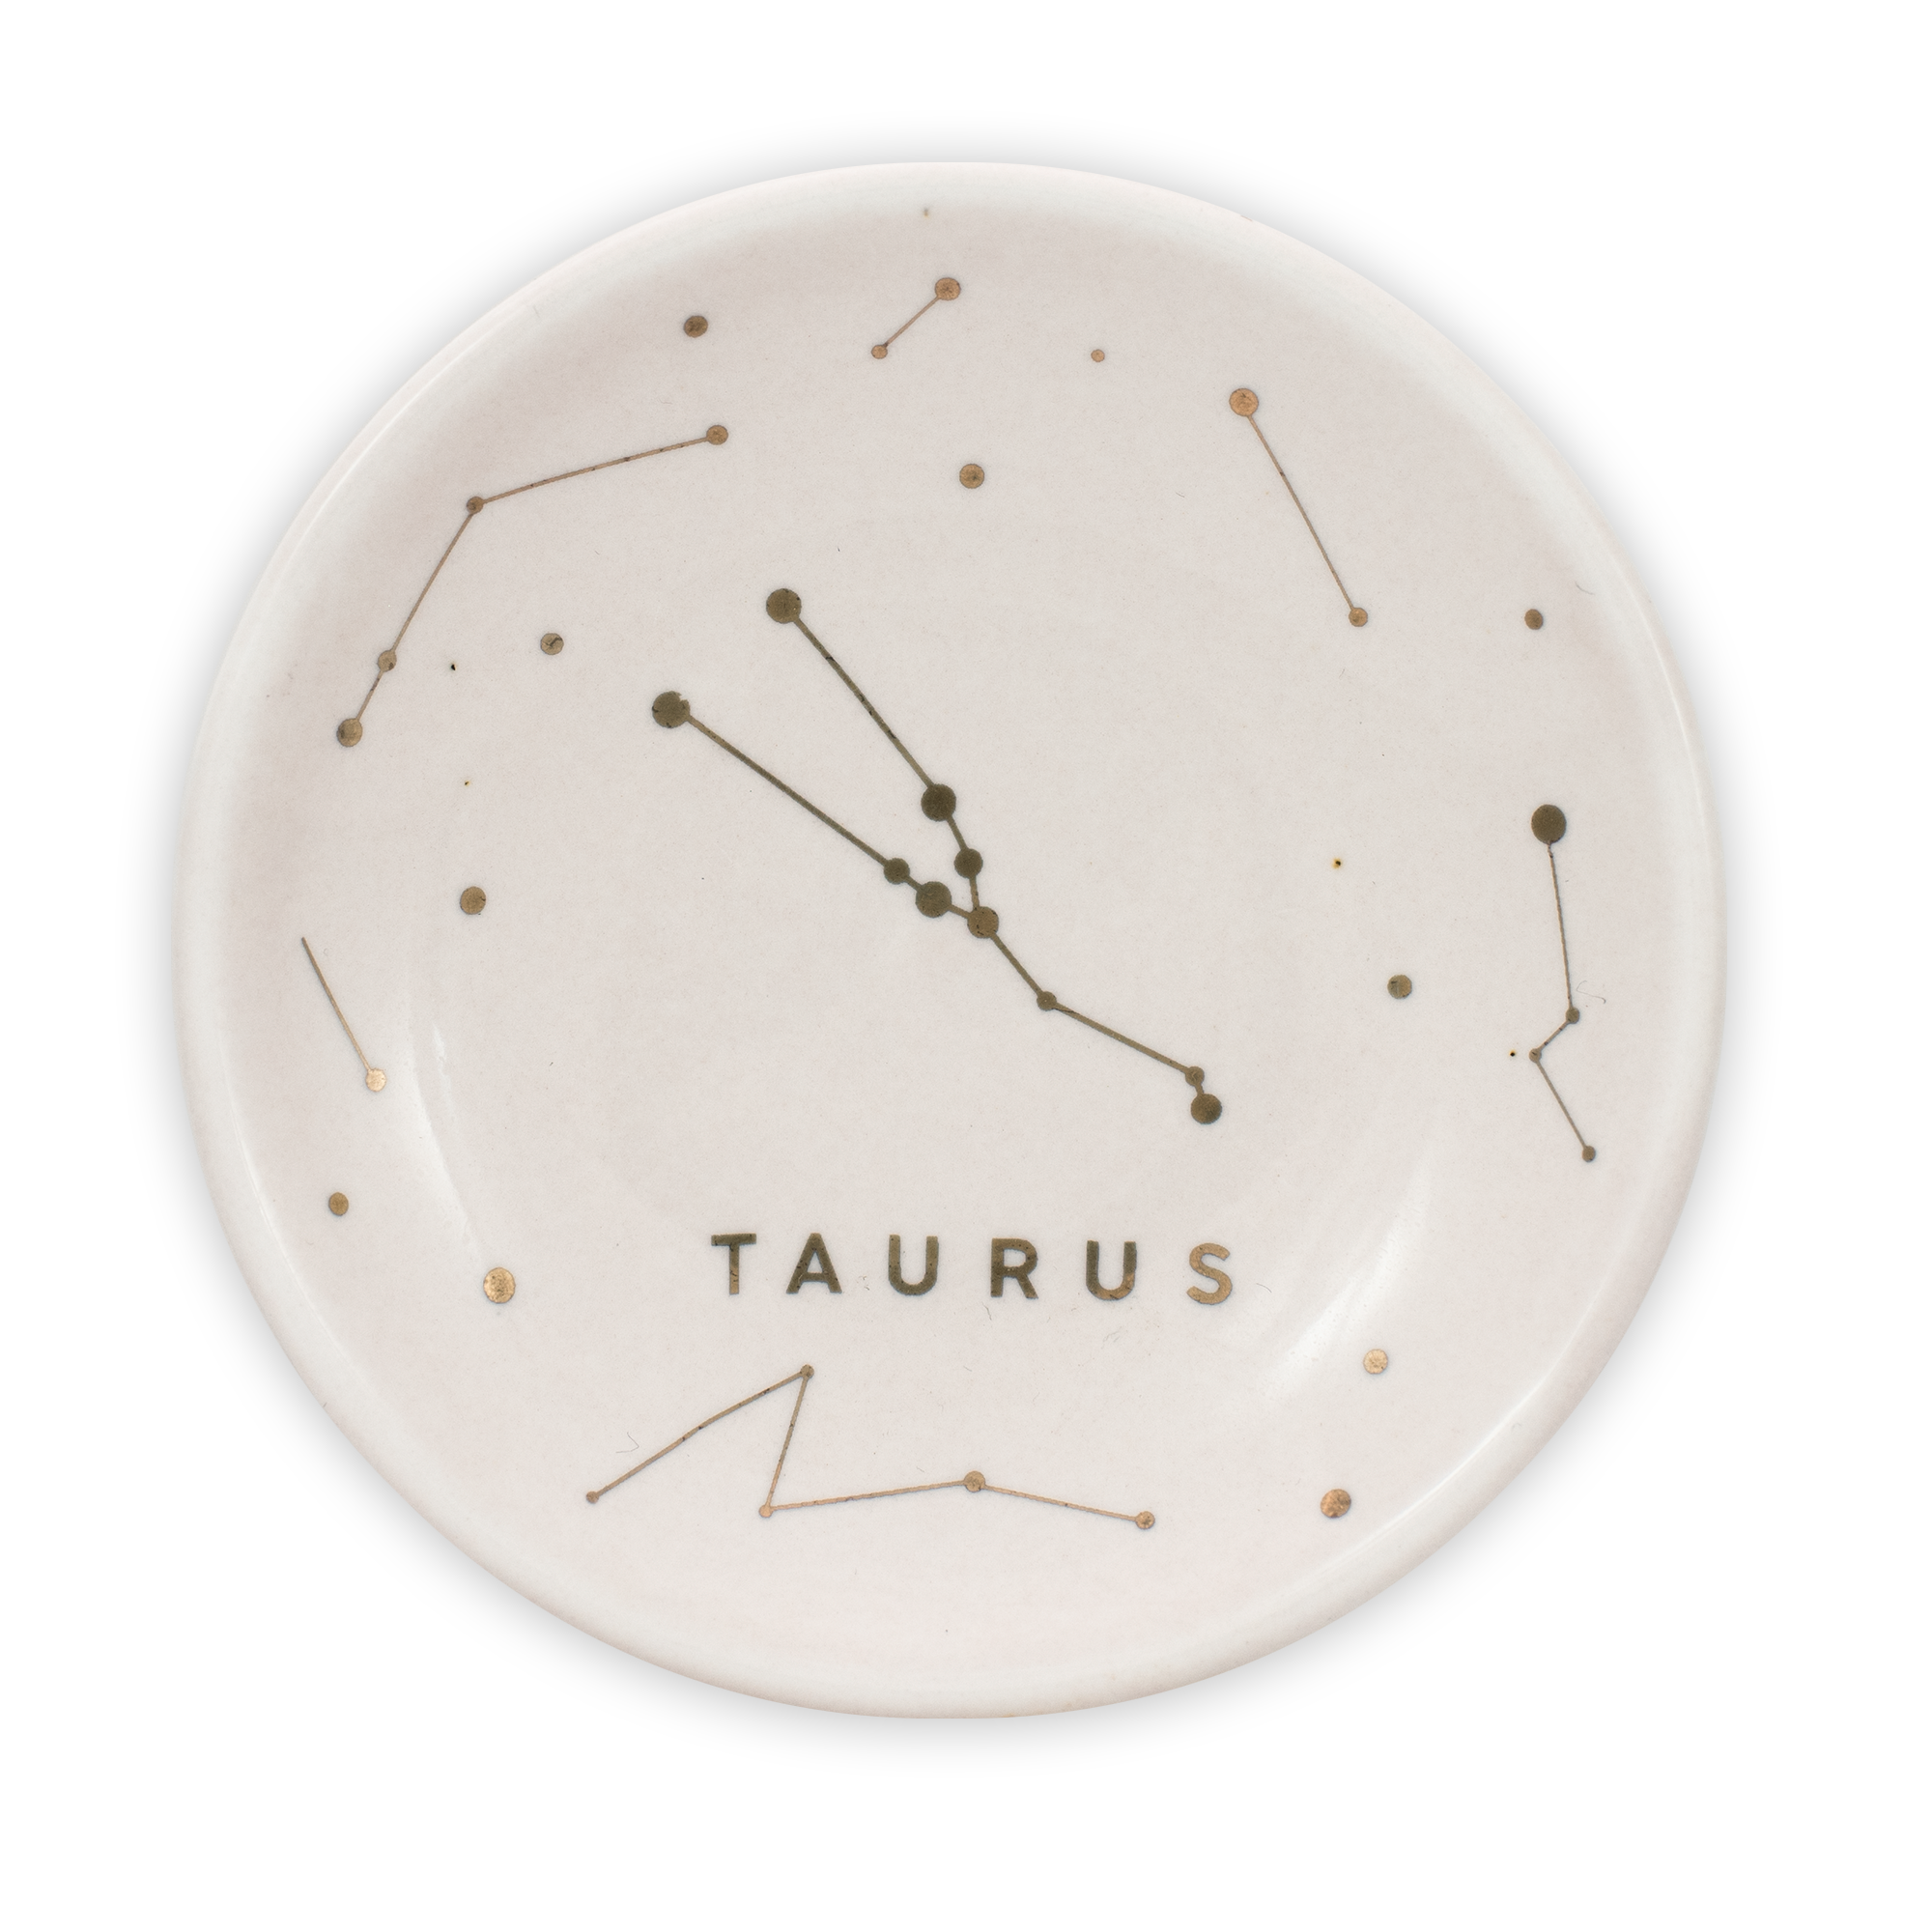 Lucky Feather Zodiac Constellation Trinket Dish